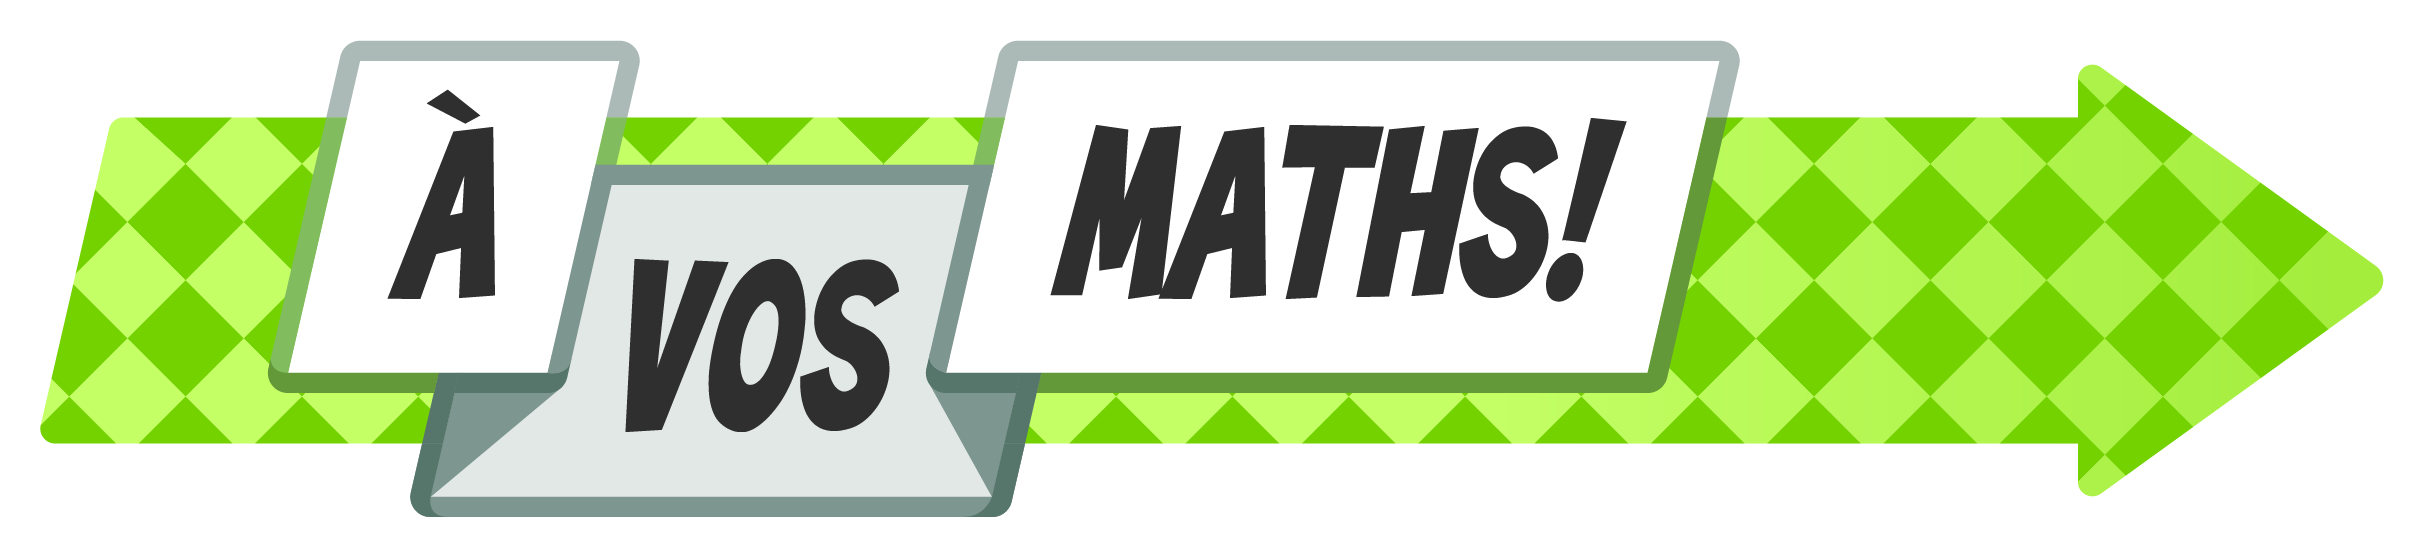 Netmath À vos maths! camp de récapitulation